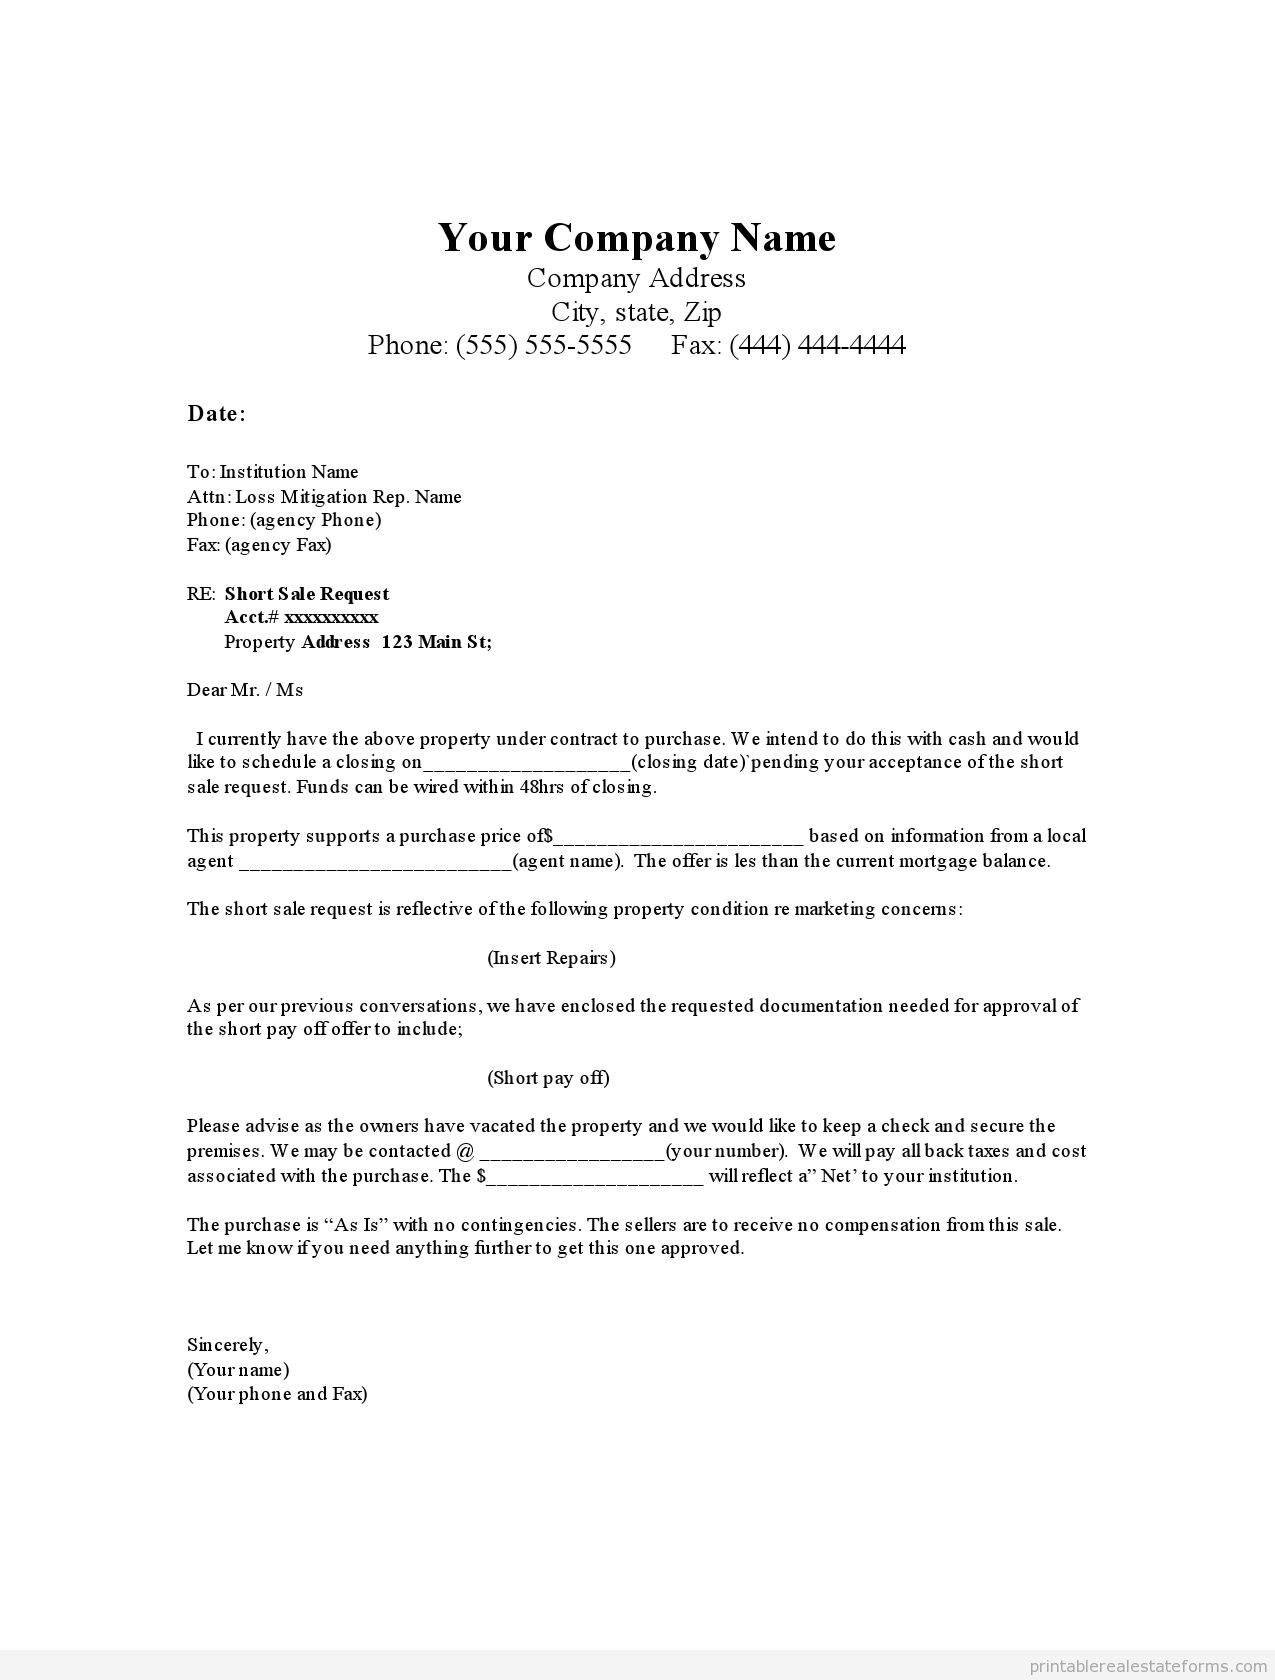 Offer To Purchase Letter Template Collection Letter Templates